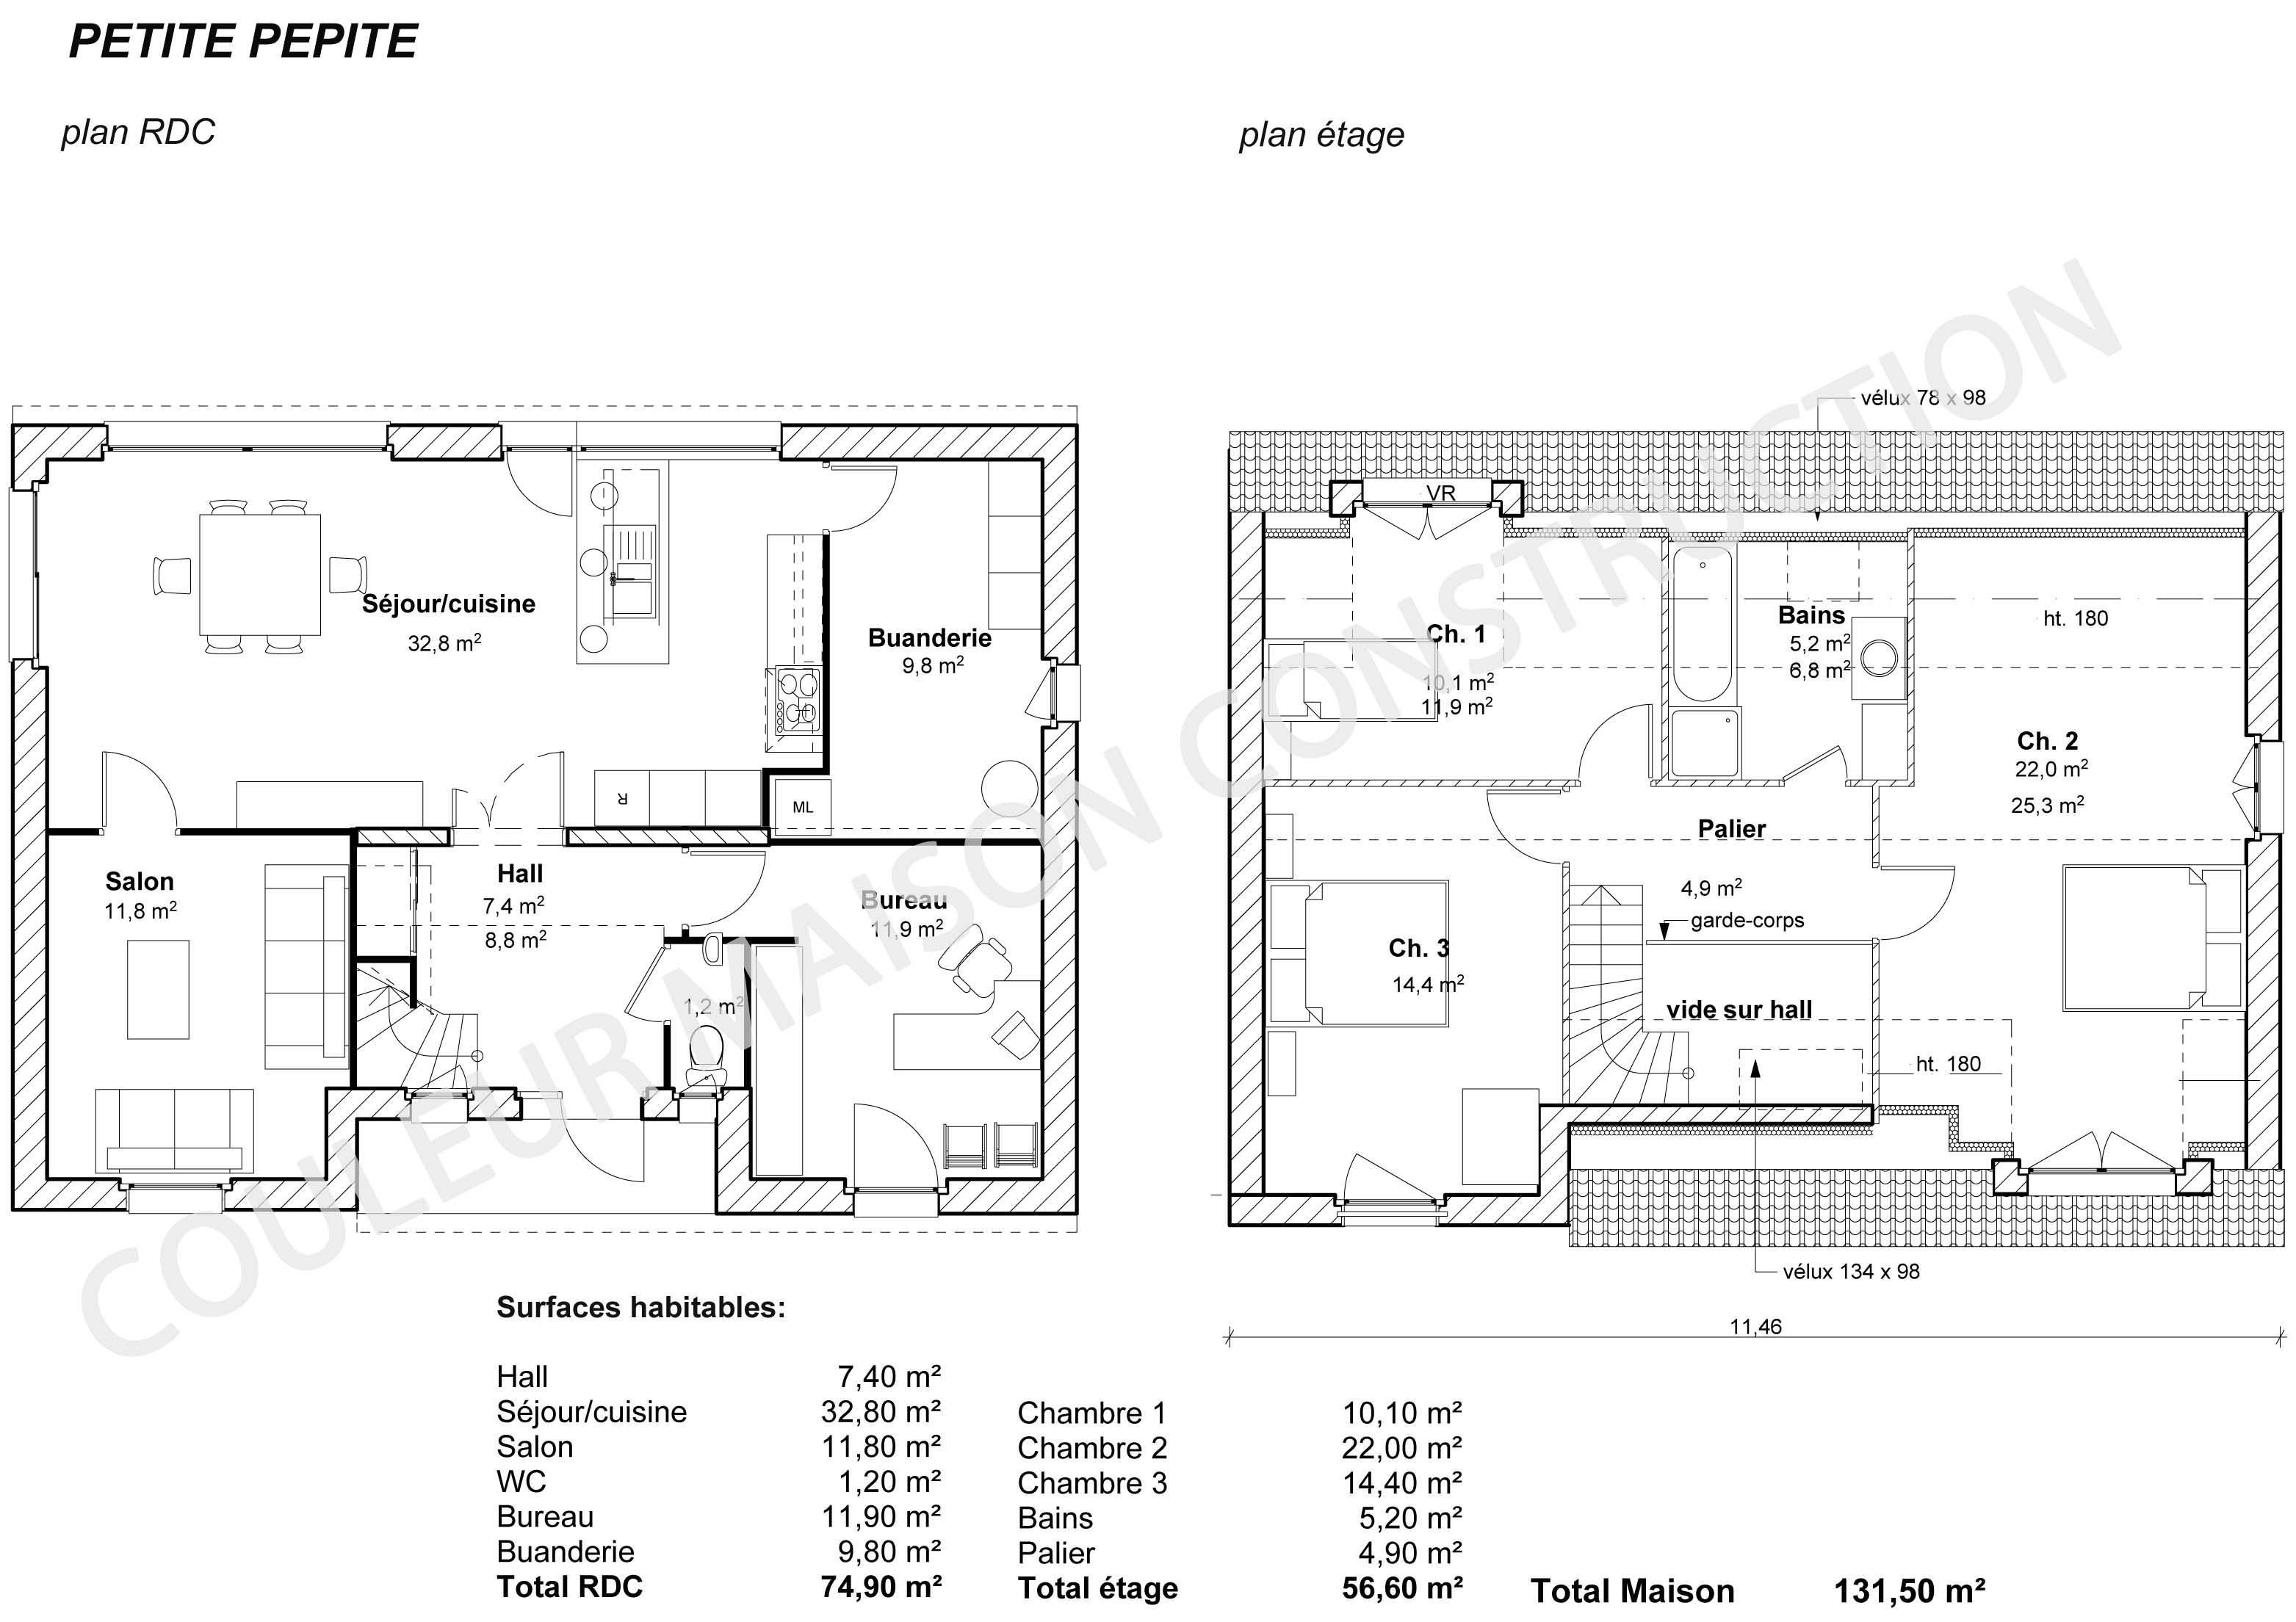 Couleur maison construction plan de maison petite p pite for Plans de maison consultables